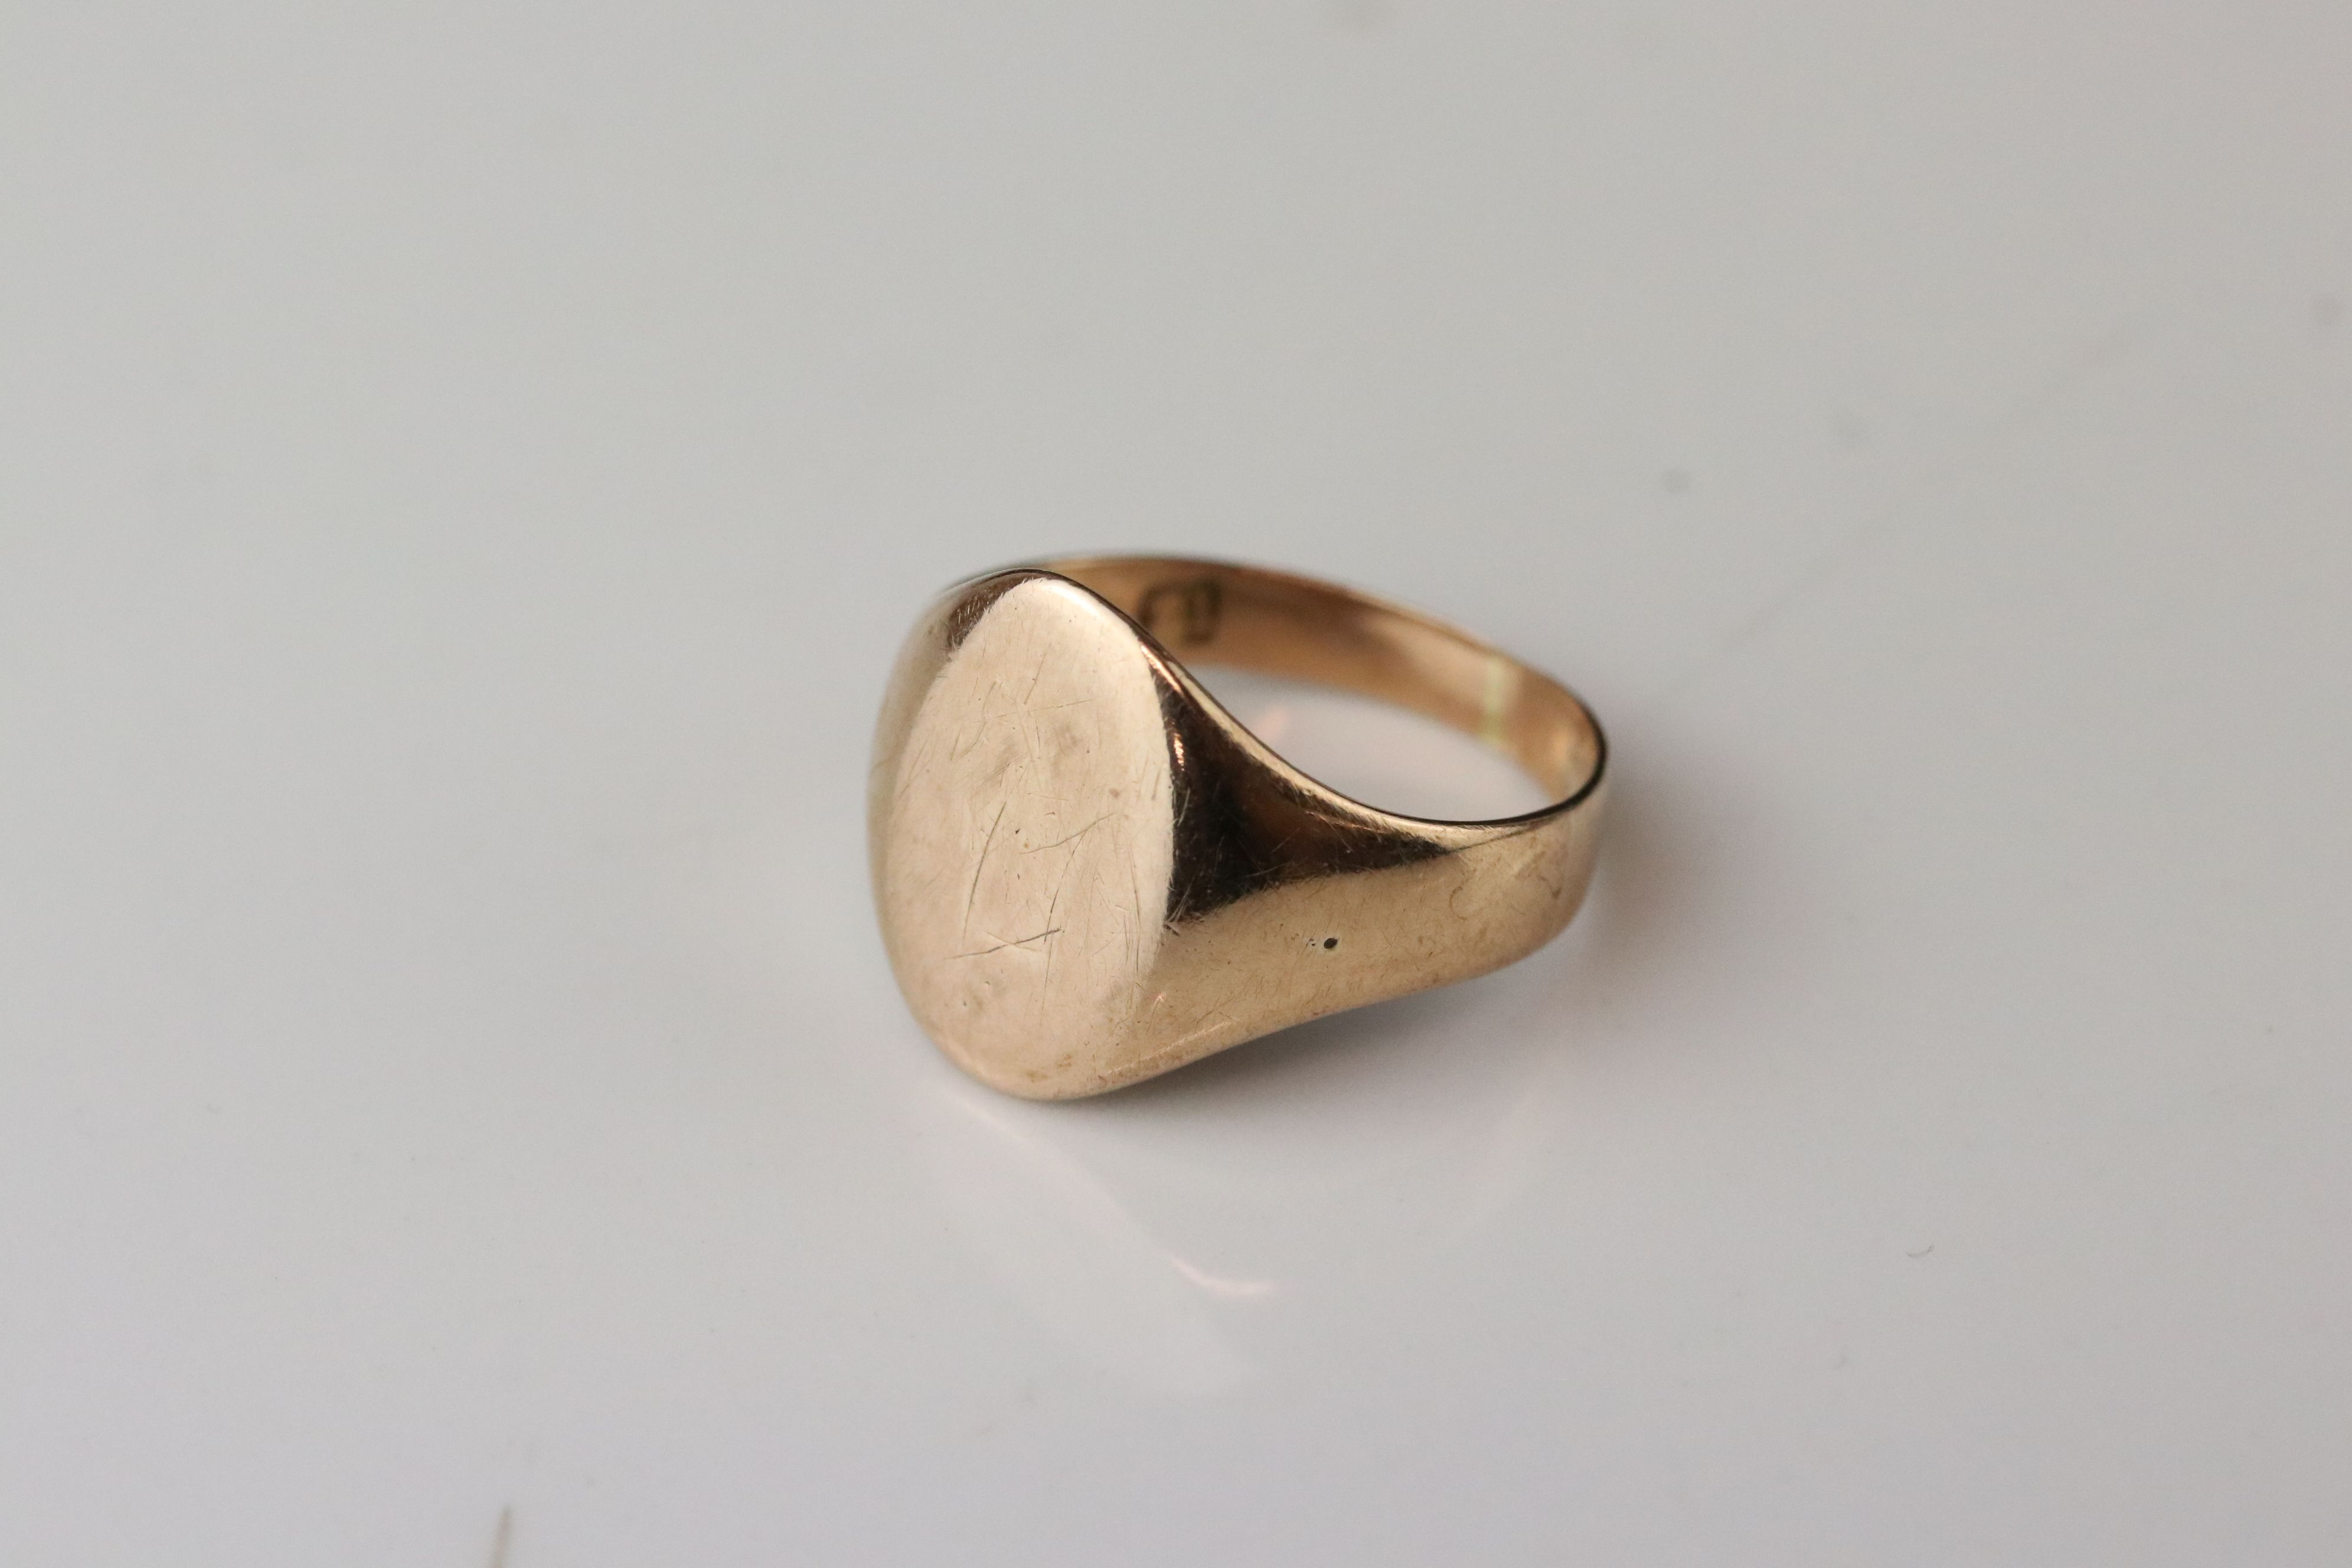 Rose gold signet ring, assessed as 9ct gold, oval panel (possibly with extremely rubbed monogram), - Image 4 of 4